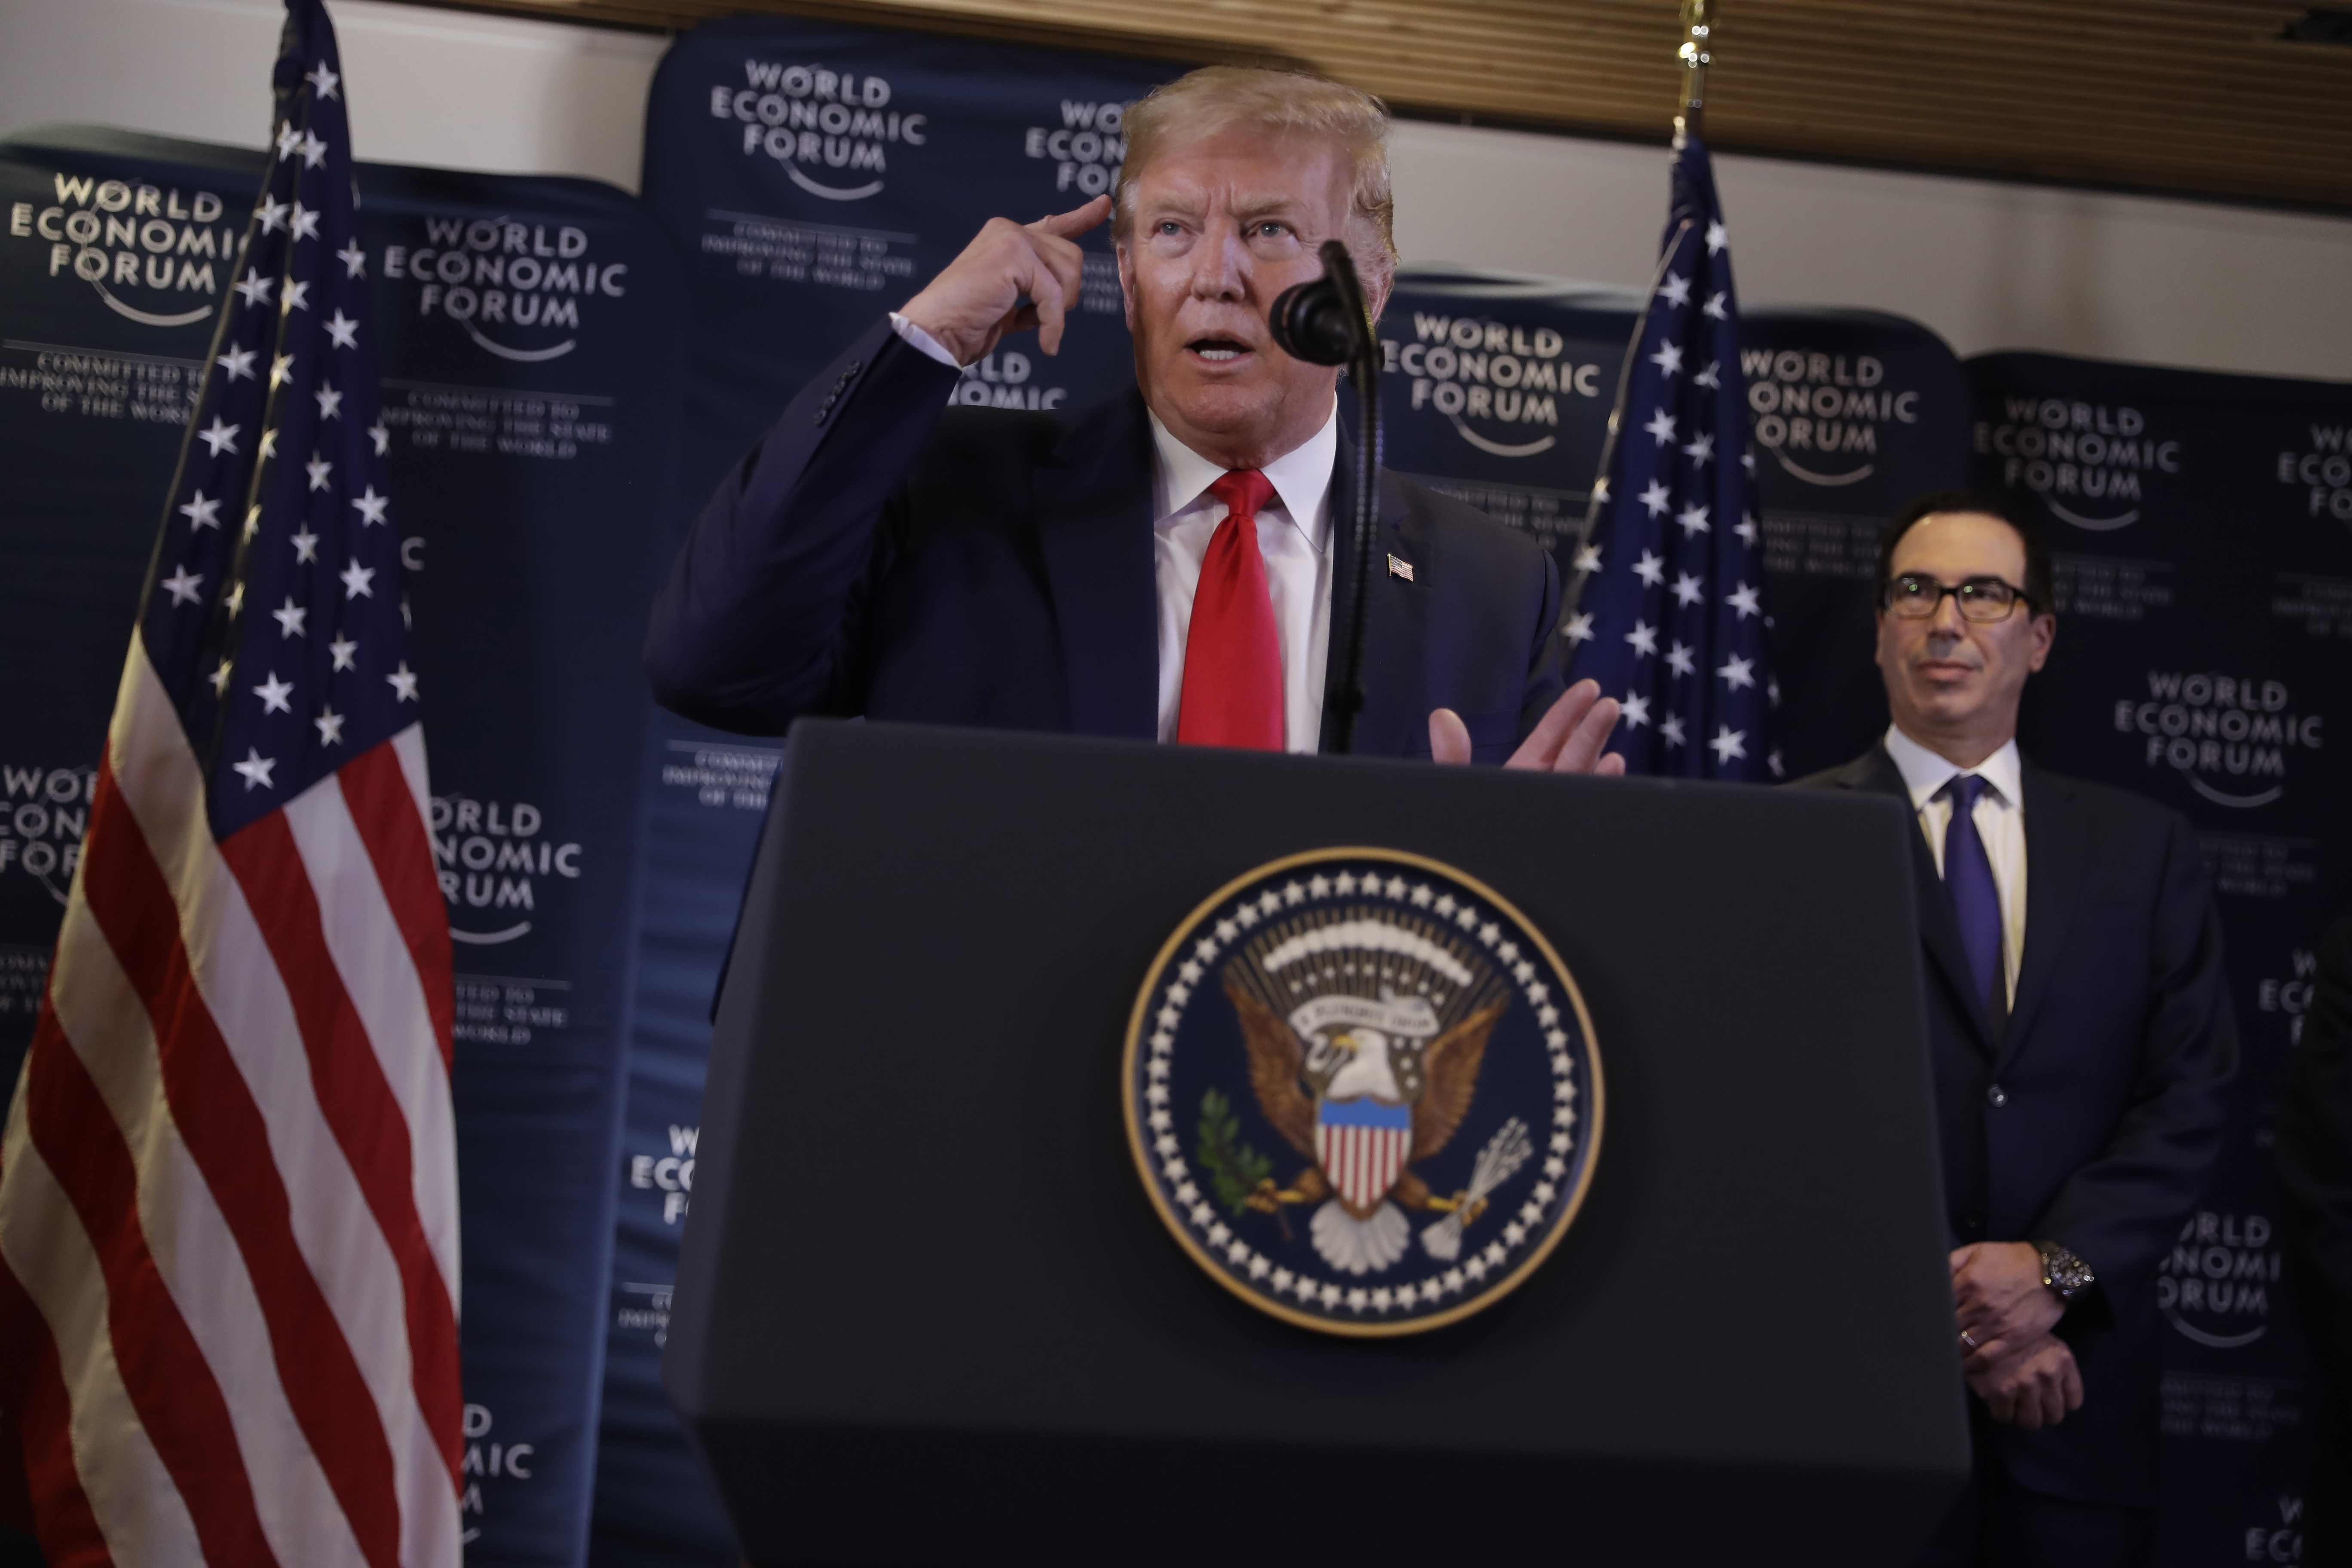 U.S. President Donald Trump speaks during a news conference at the World Economic Forum in Davos, Switzerland, on Jan. 22, 2020.